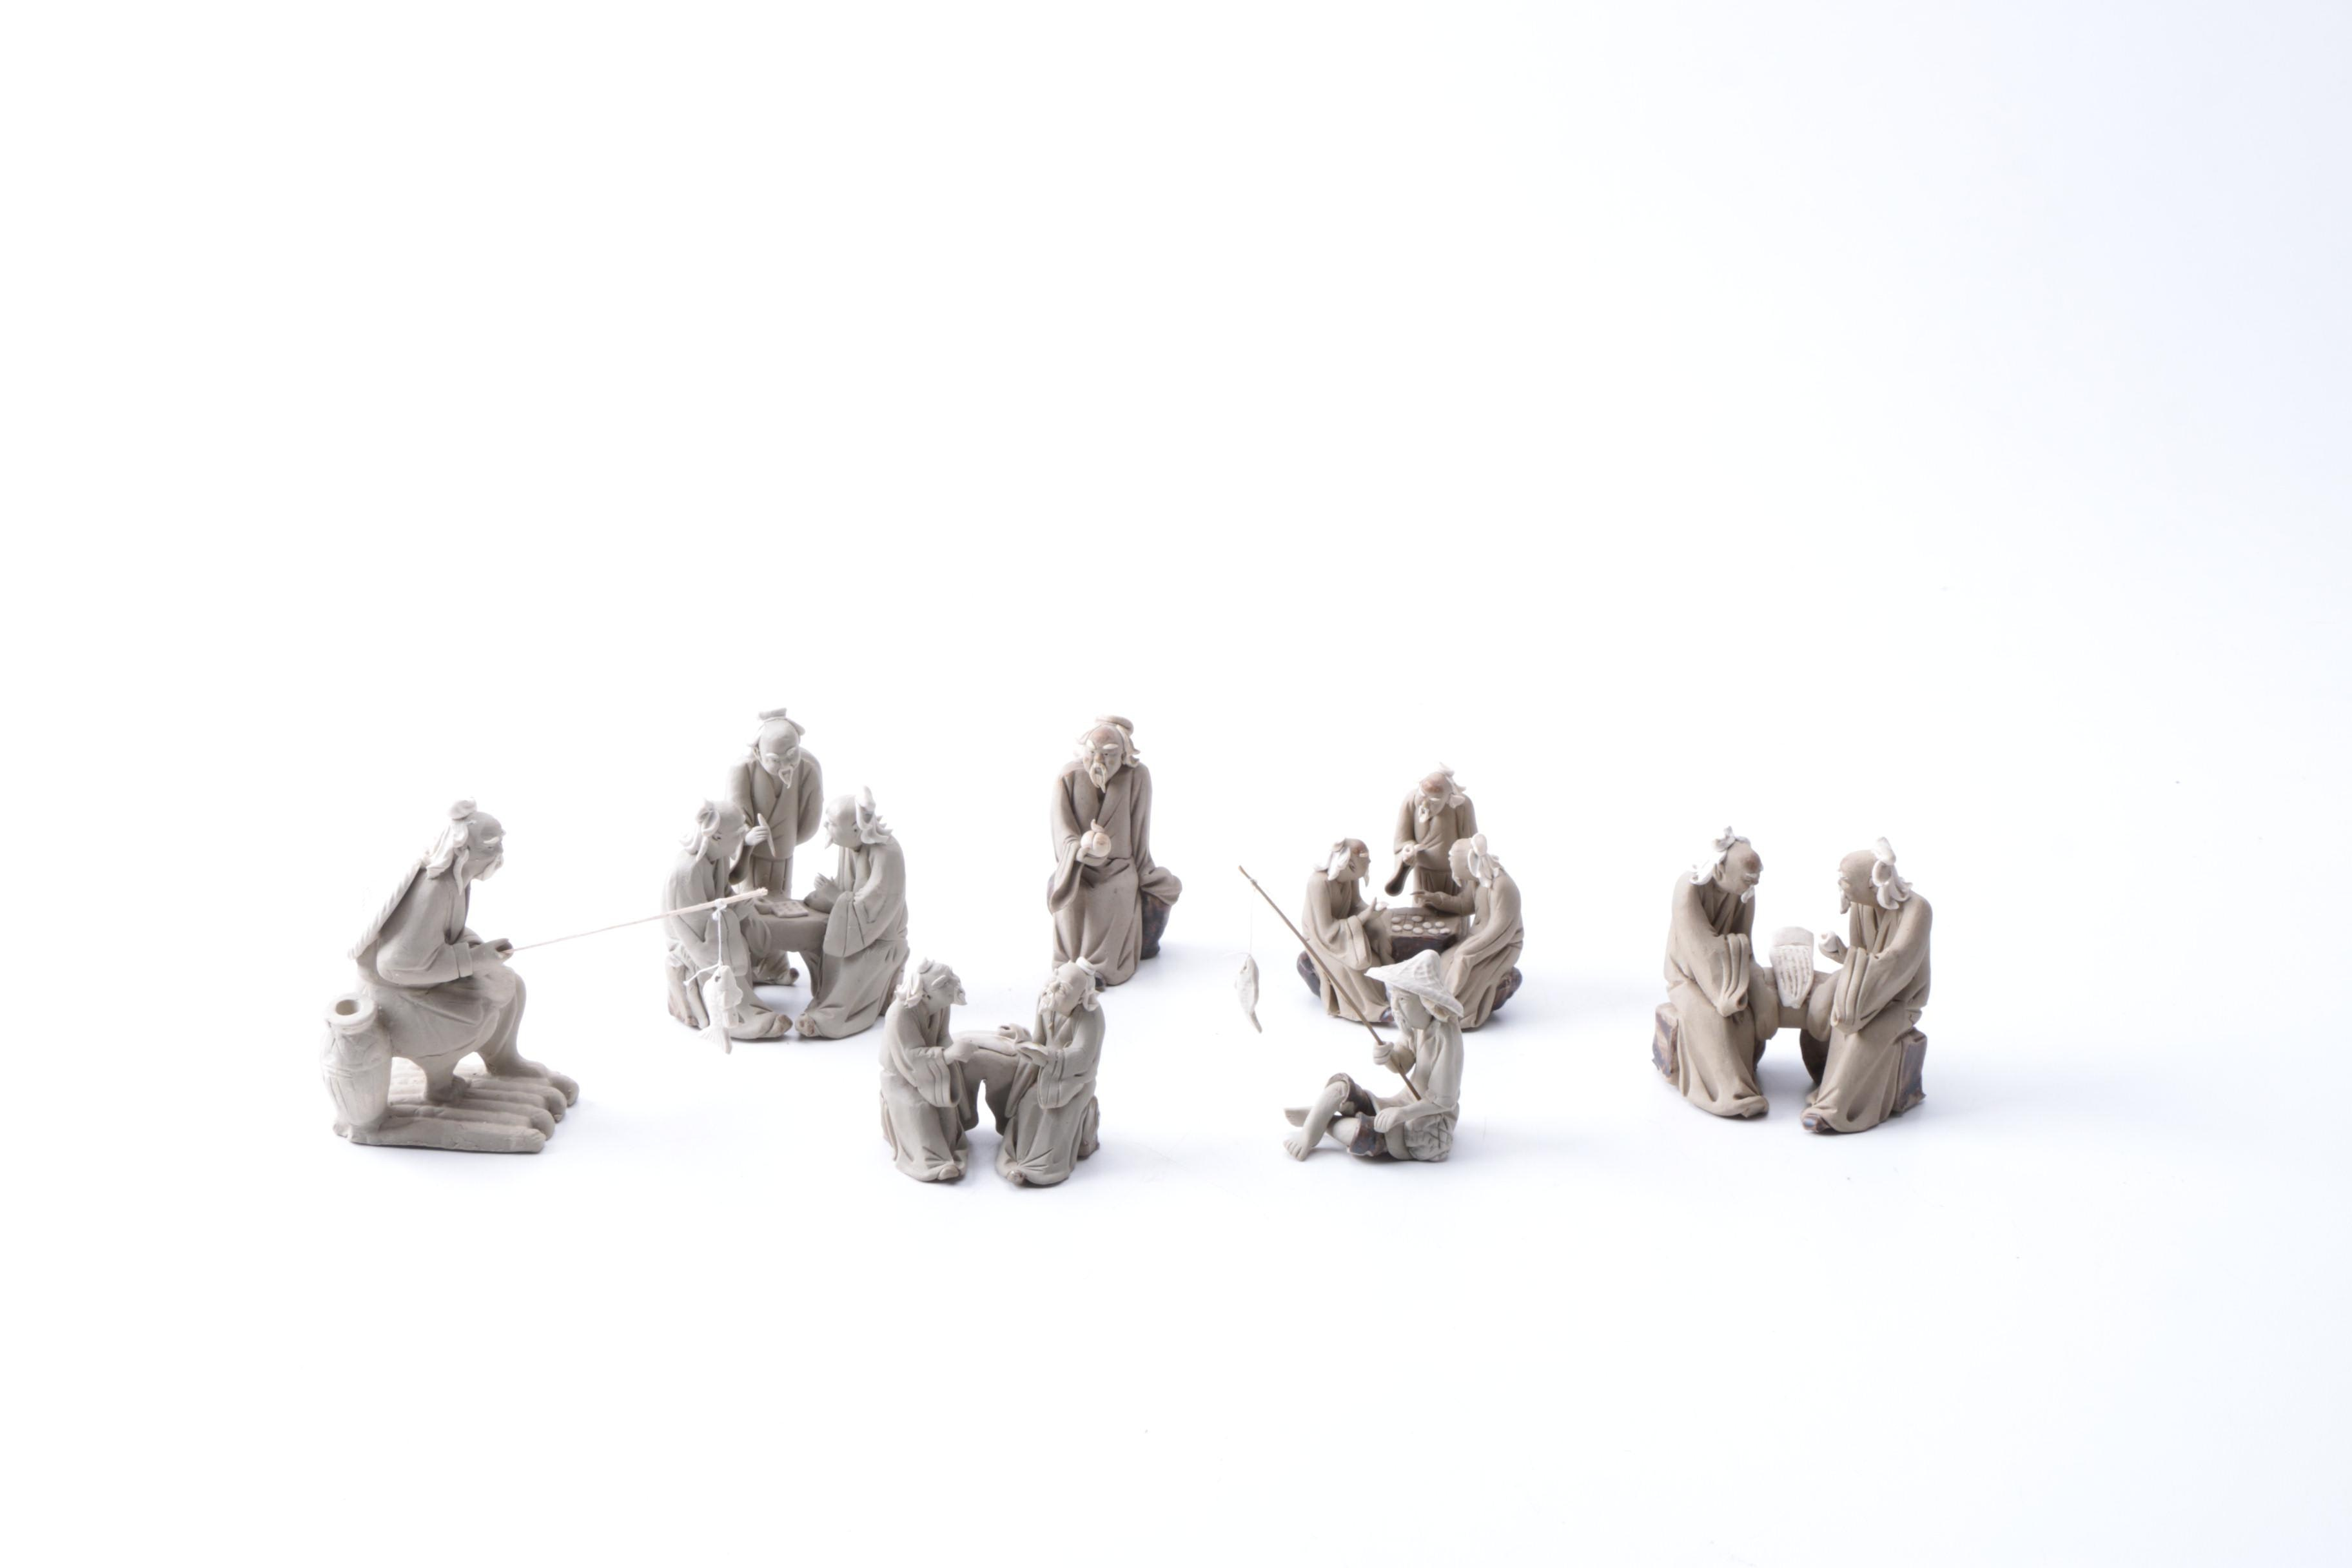 Collection of Chinese Ceramic Figurines